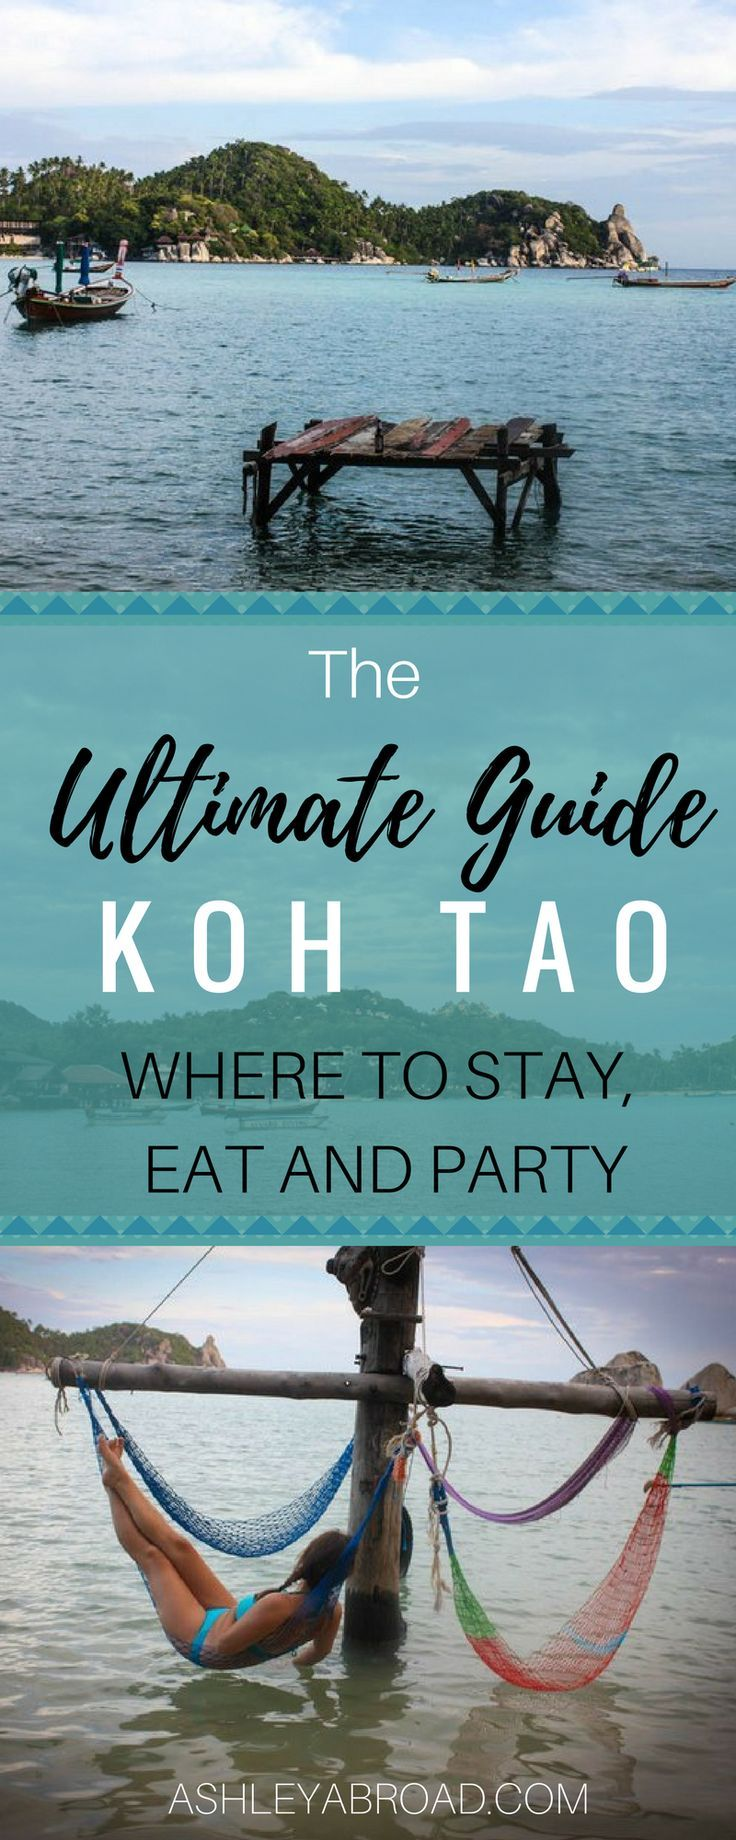 526 best //Southeast Asia Food Travel Guide// images on Pinterest ...